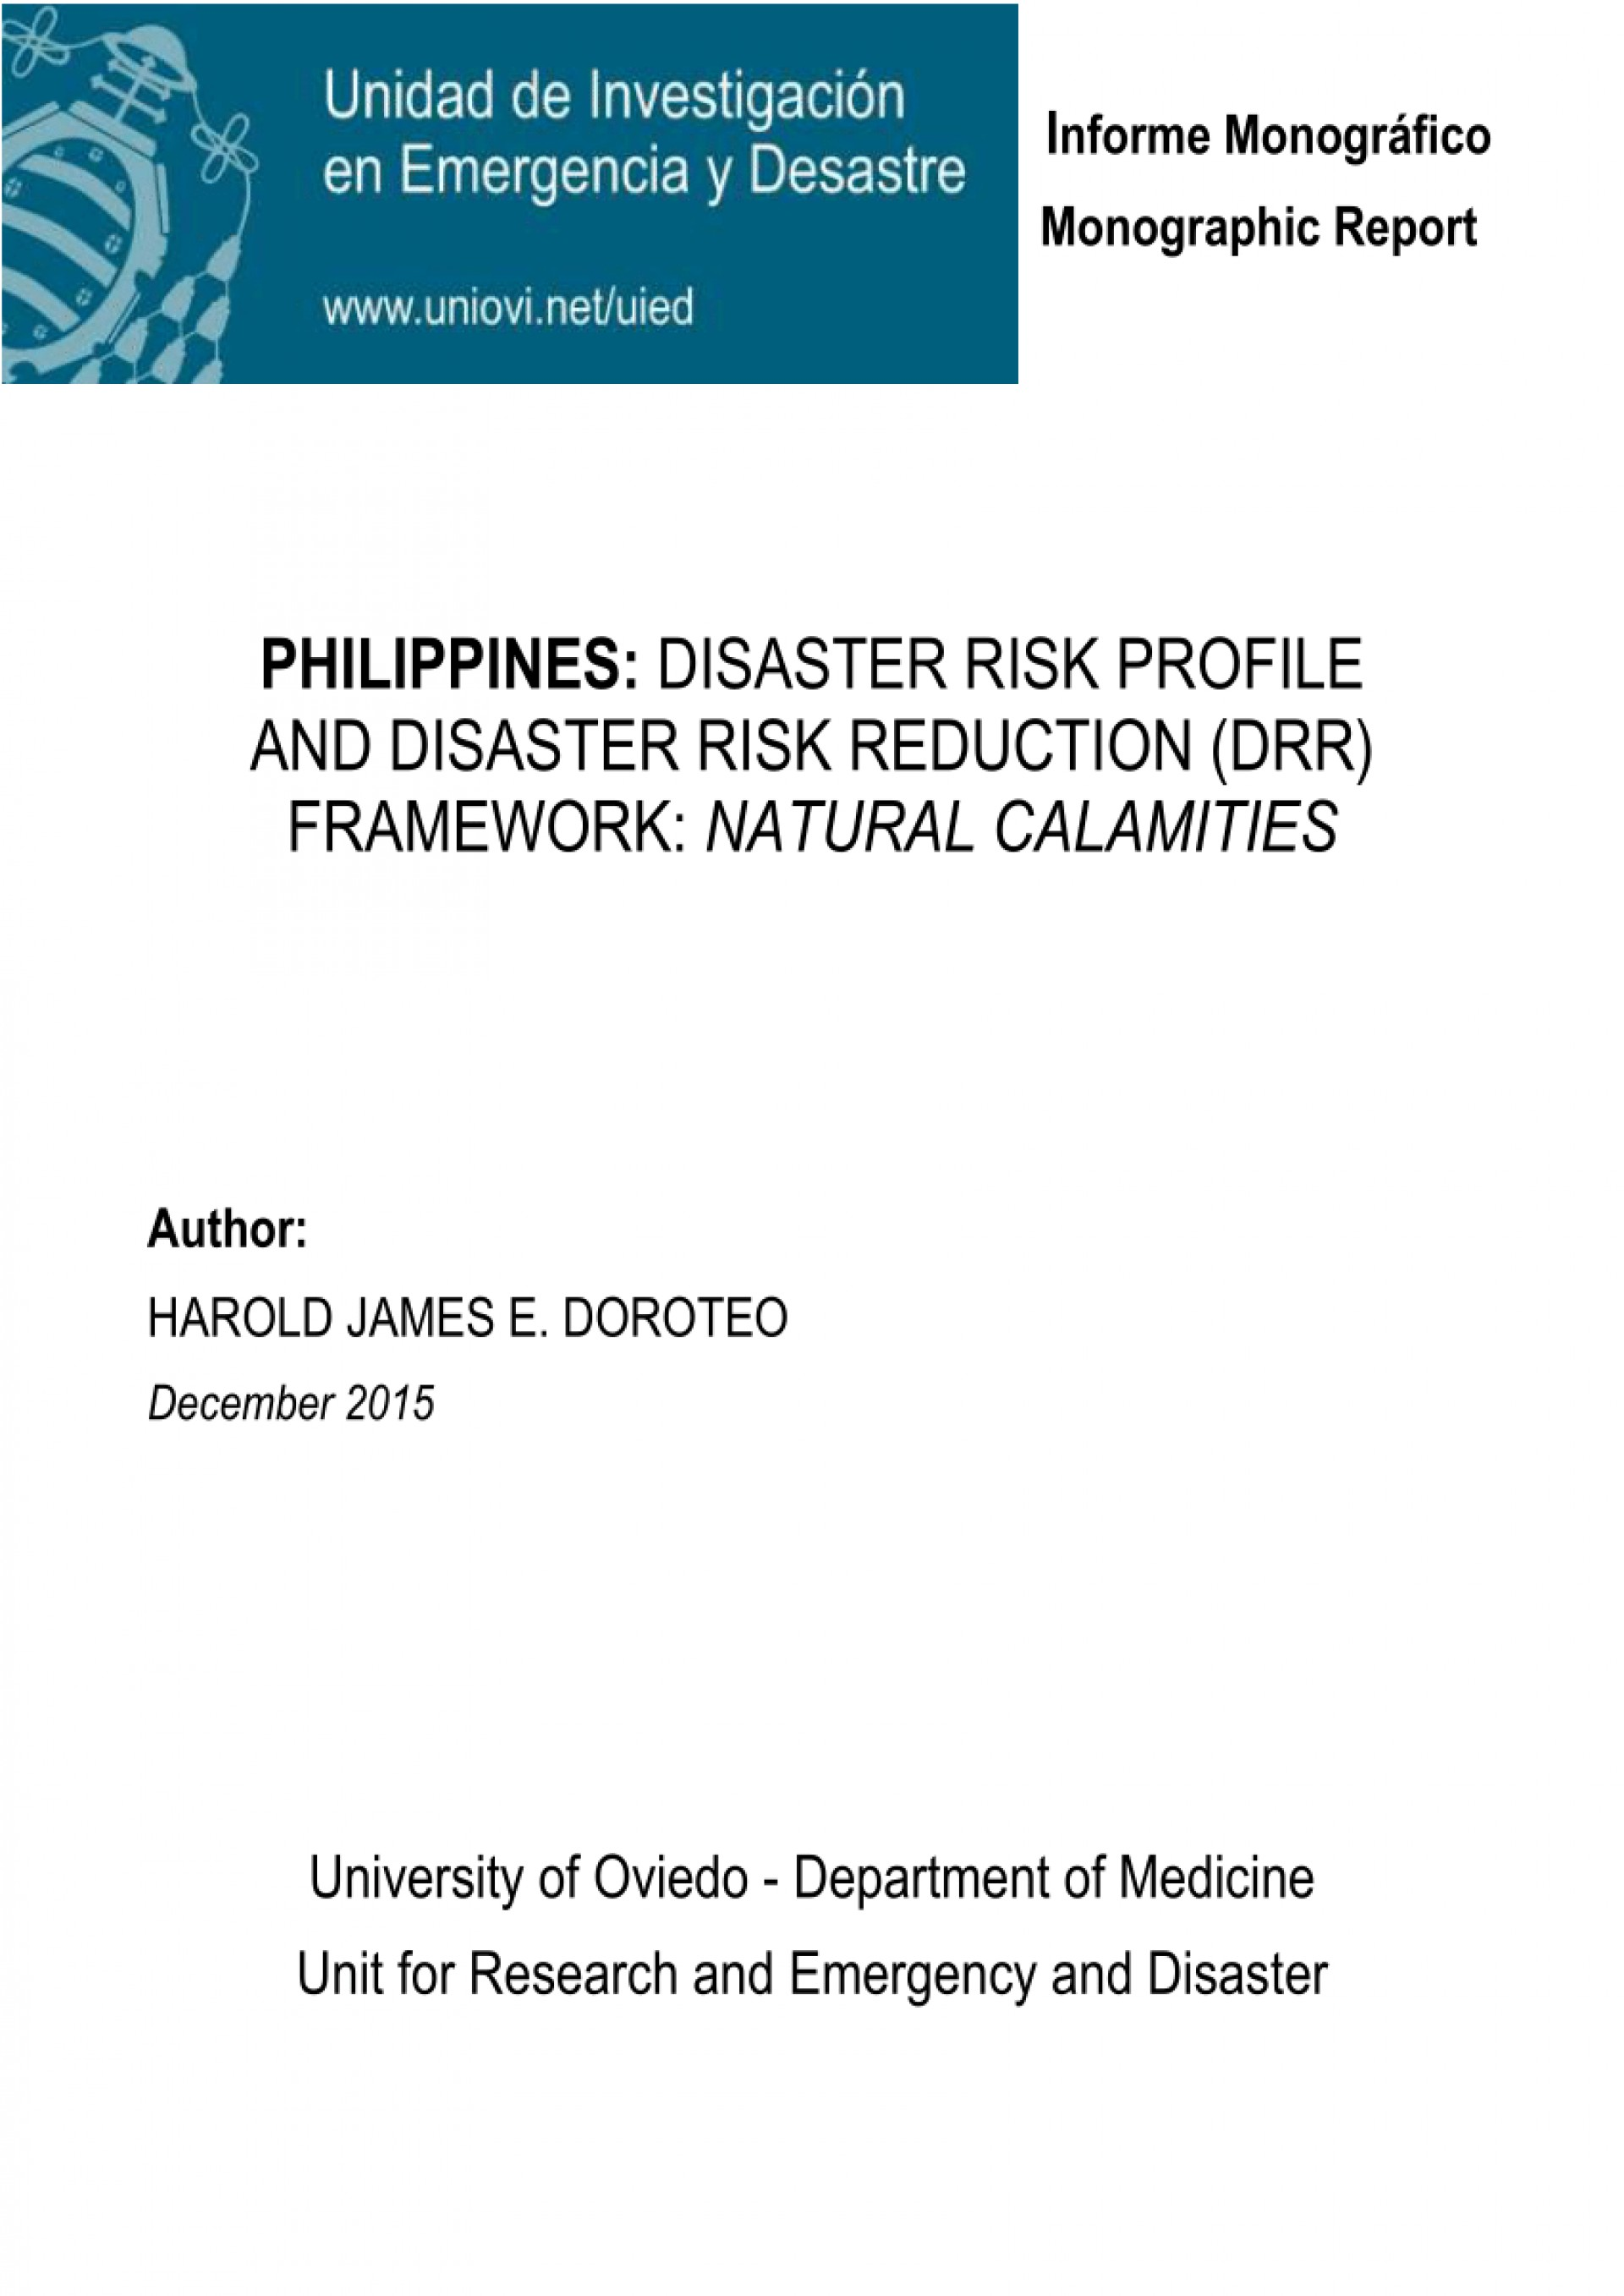 009 Earthquake Research Paper Pdf Philippines Wondrous 1920